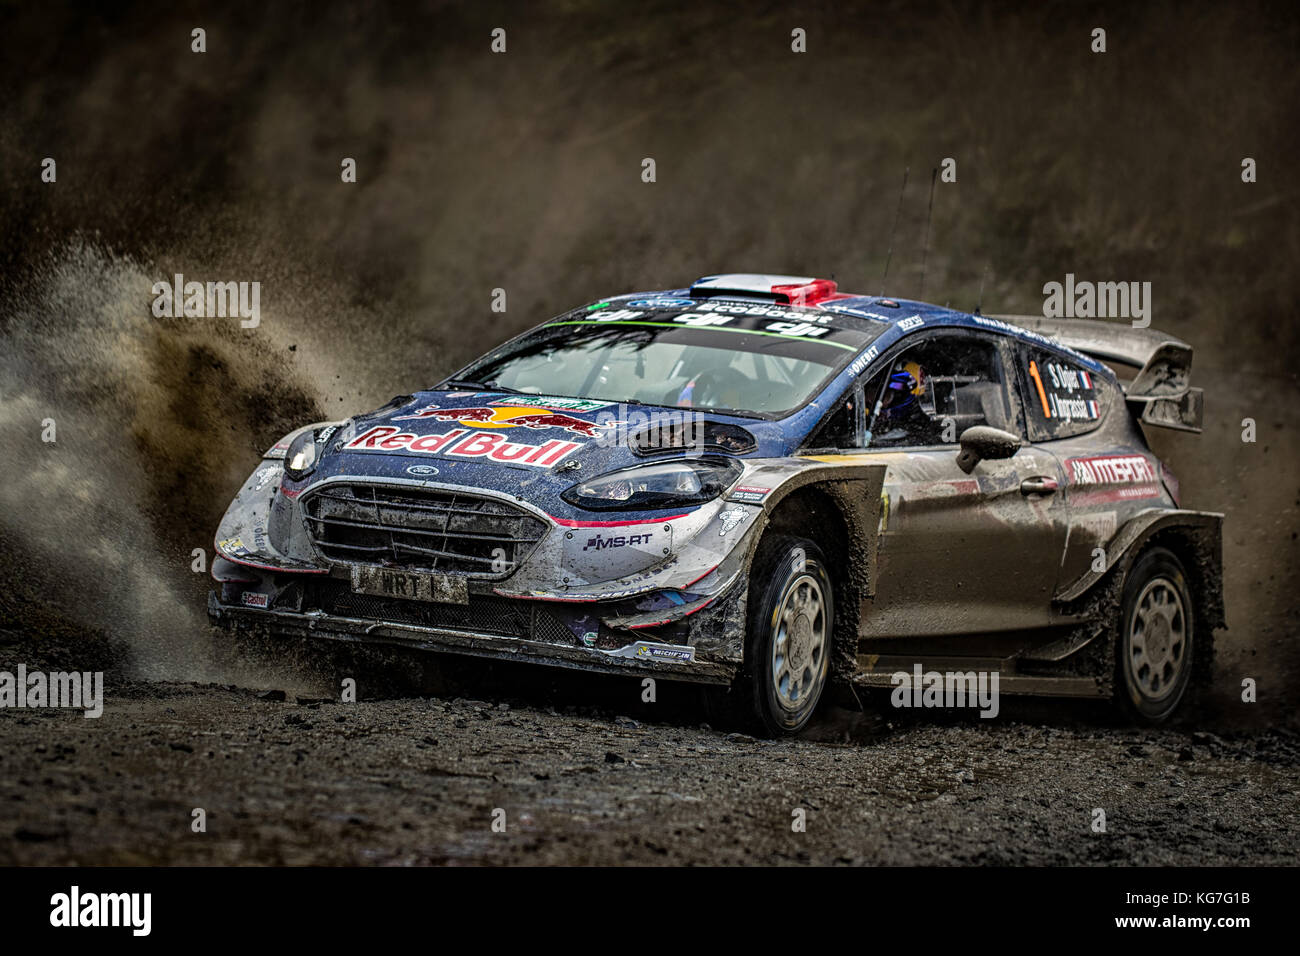 Wrc Champion Stock Photos & Wrc Champion Stock Images - Alamy